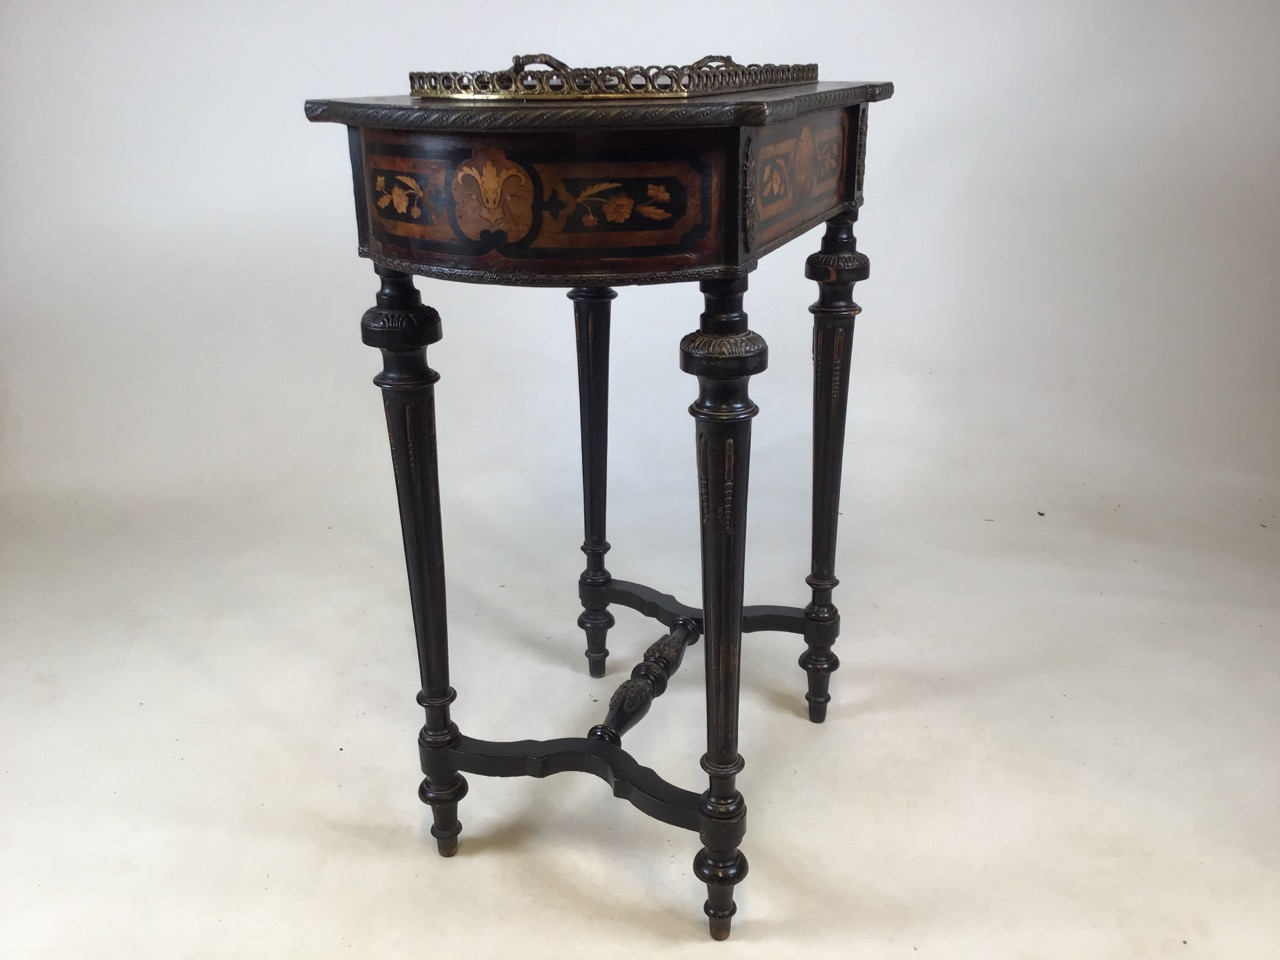 A 19th Century Dutch marquetry inlaid mahogany side table with tin lined lidded top possibly - Image 8 of 8